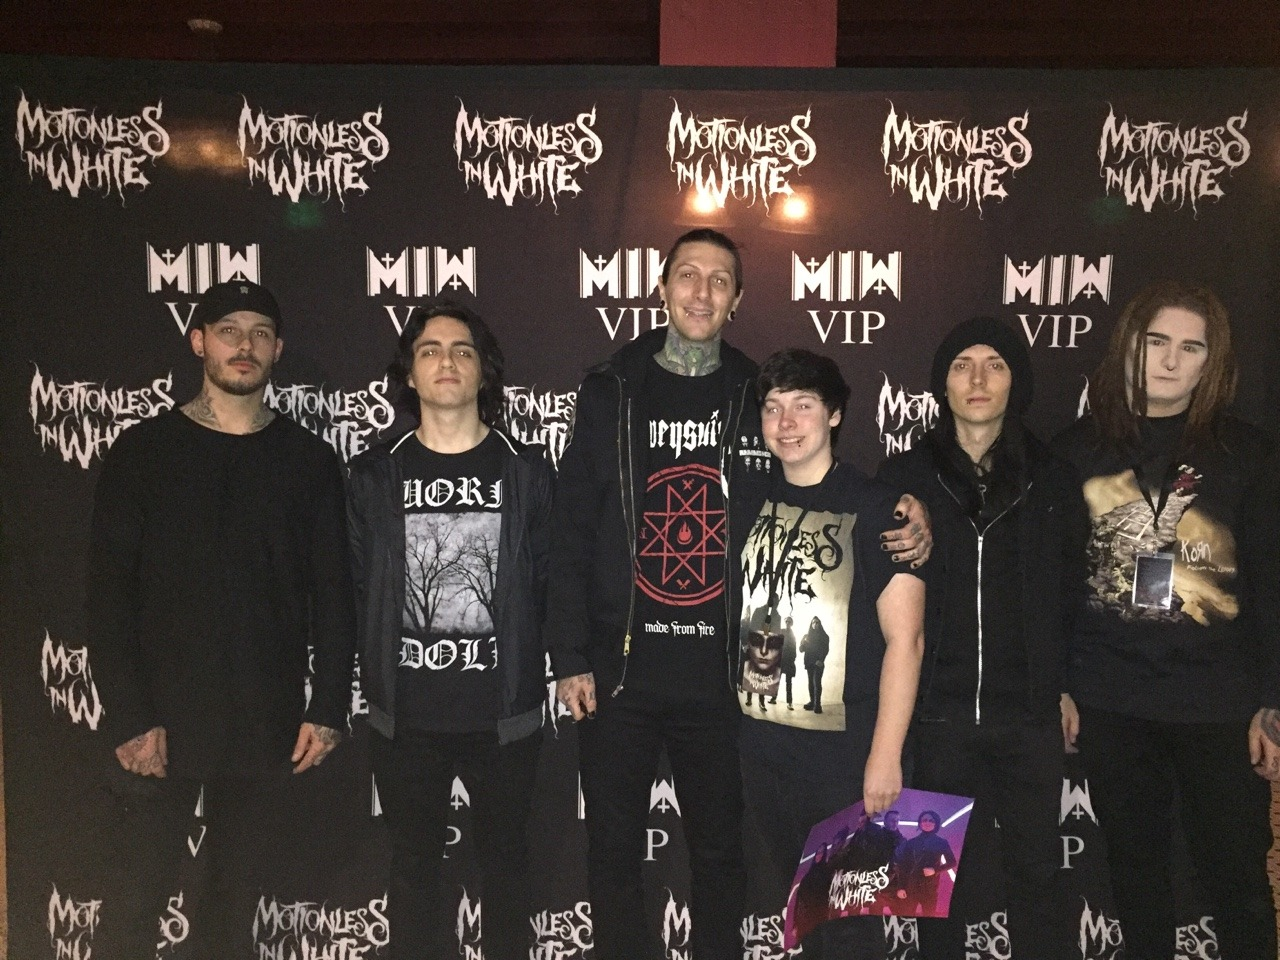 How Tall Chris Motionless